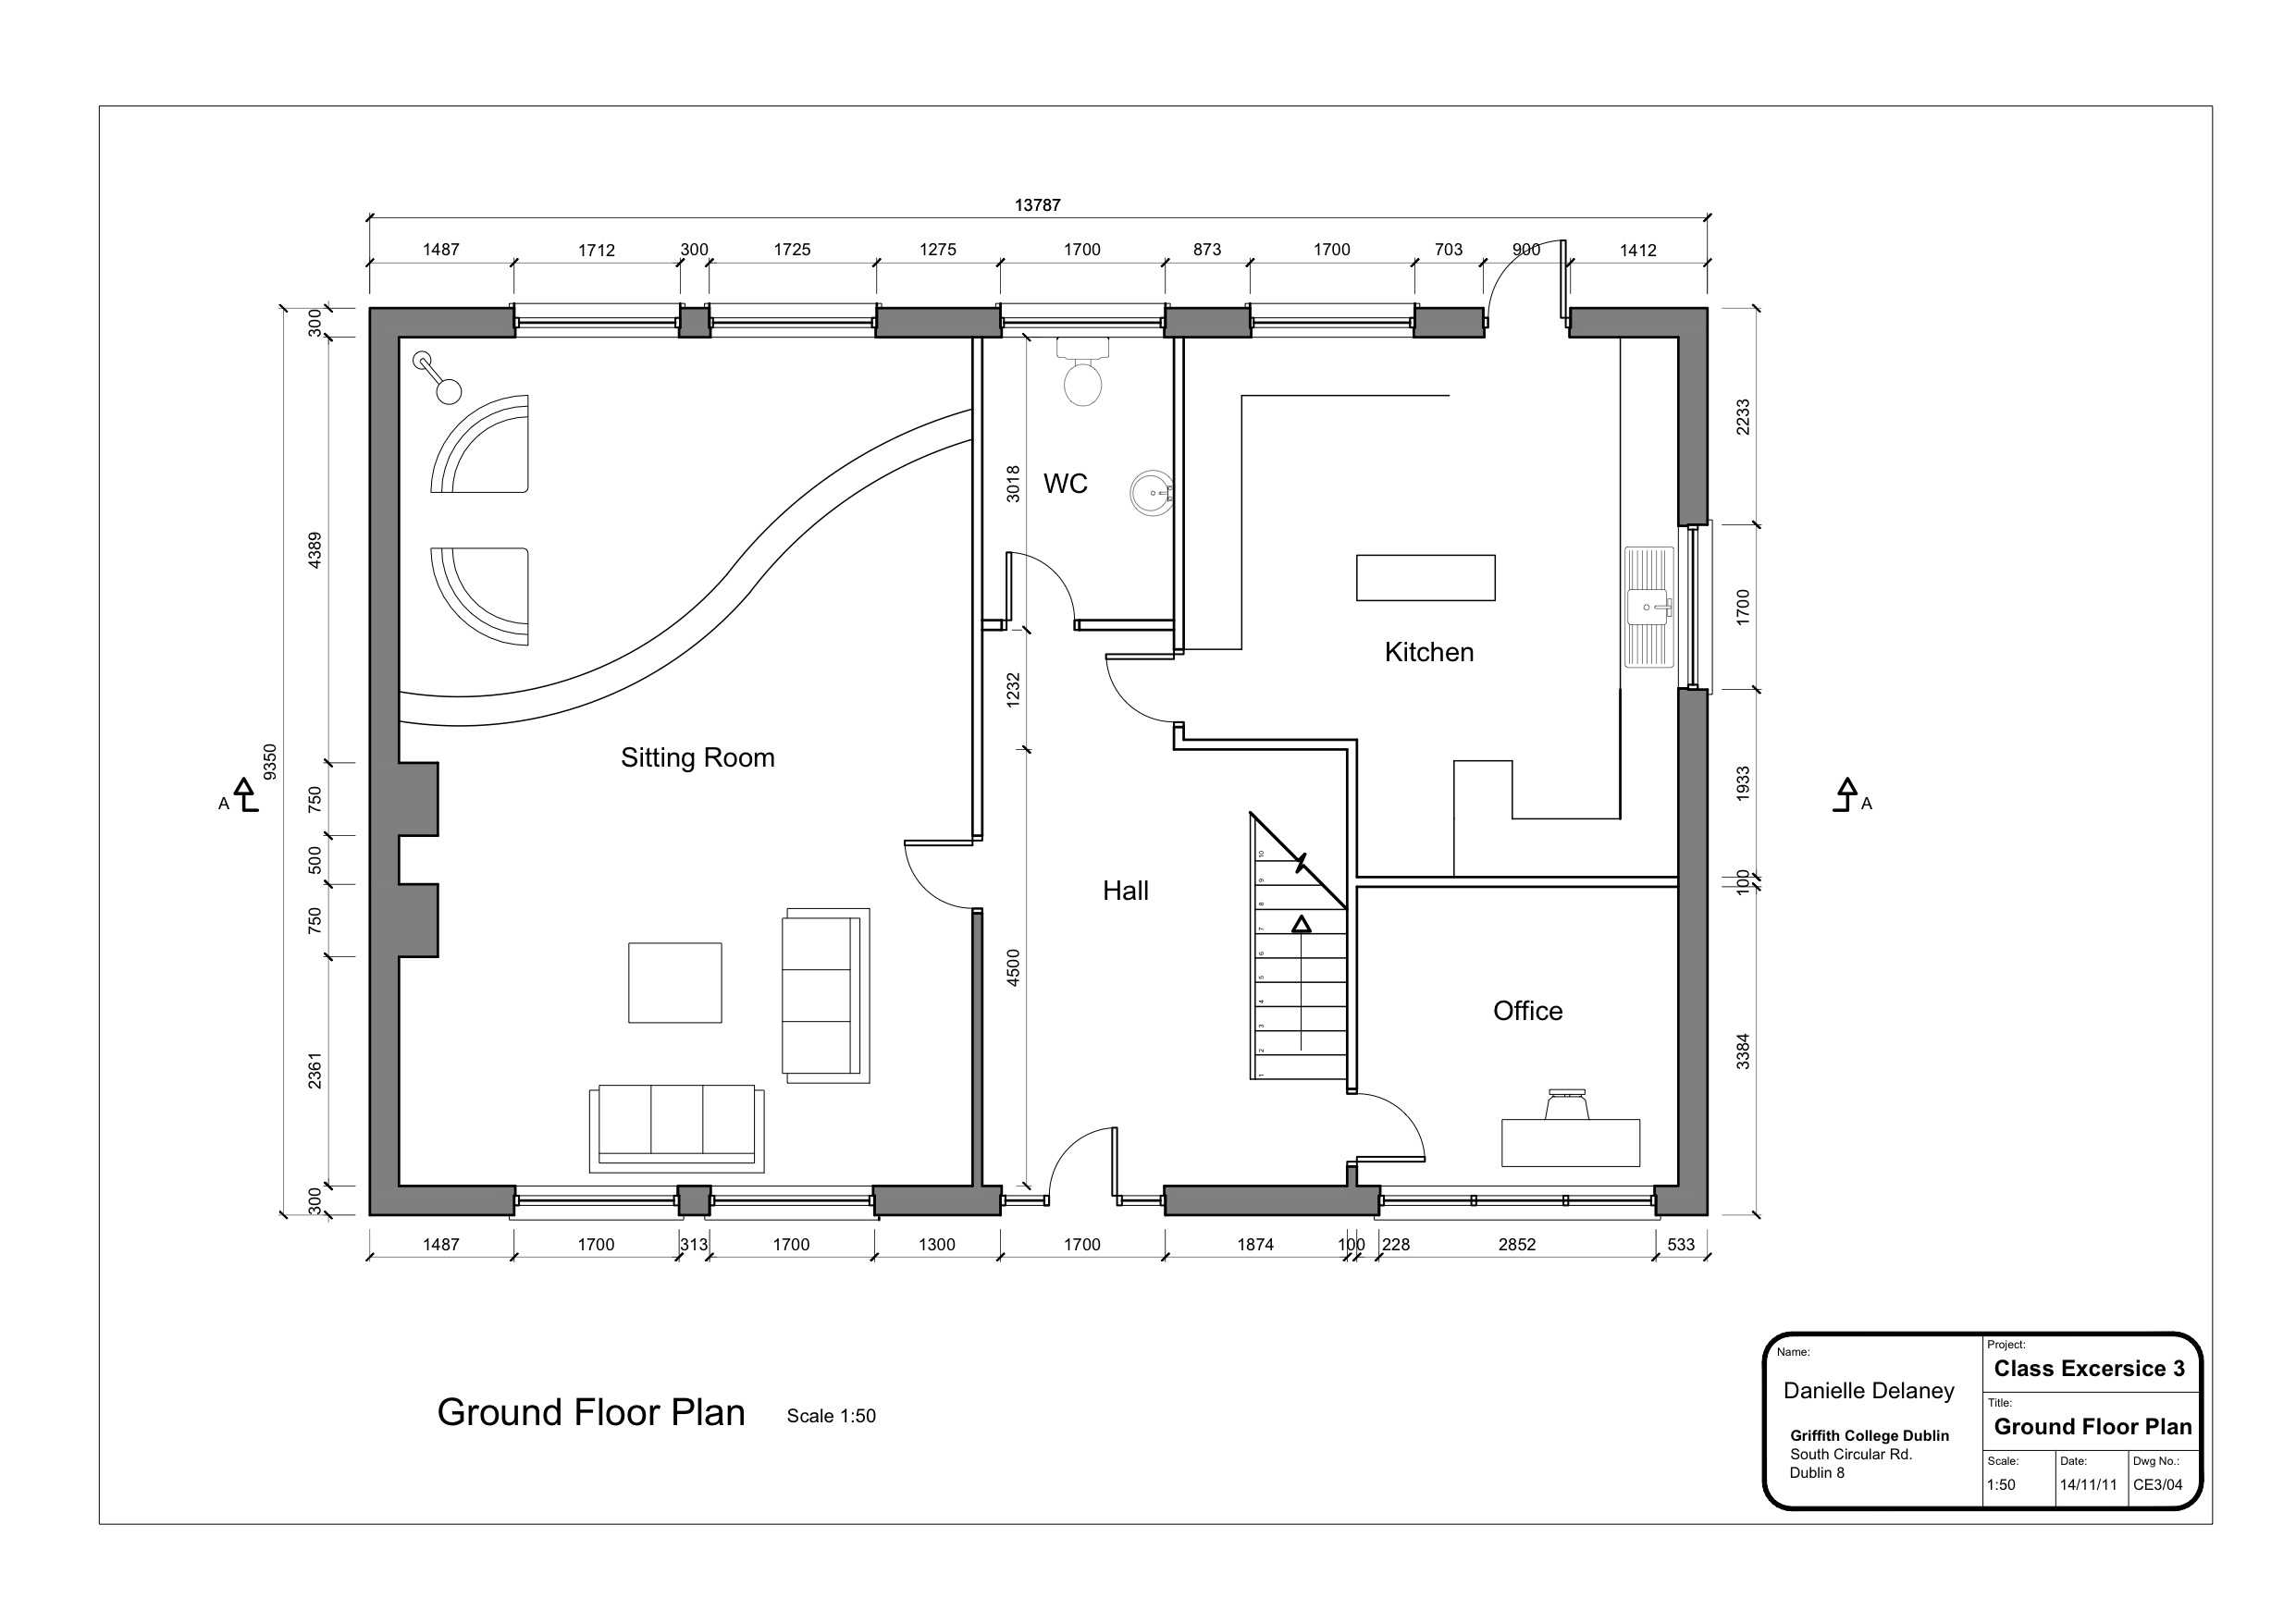 floor plan drawing at getdrawings com